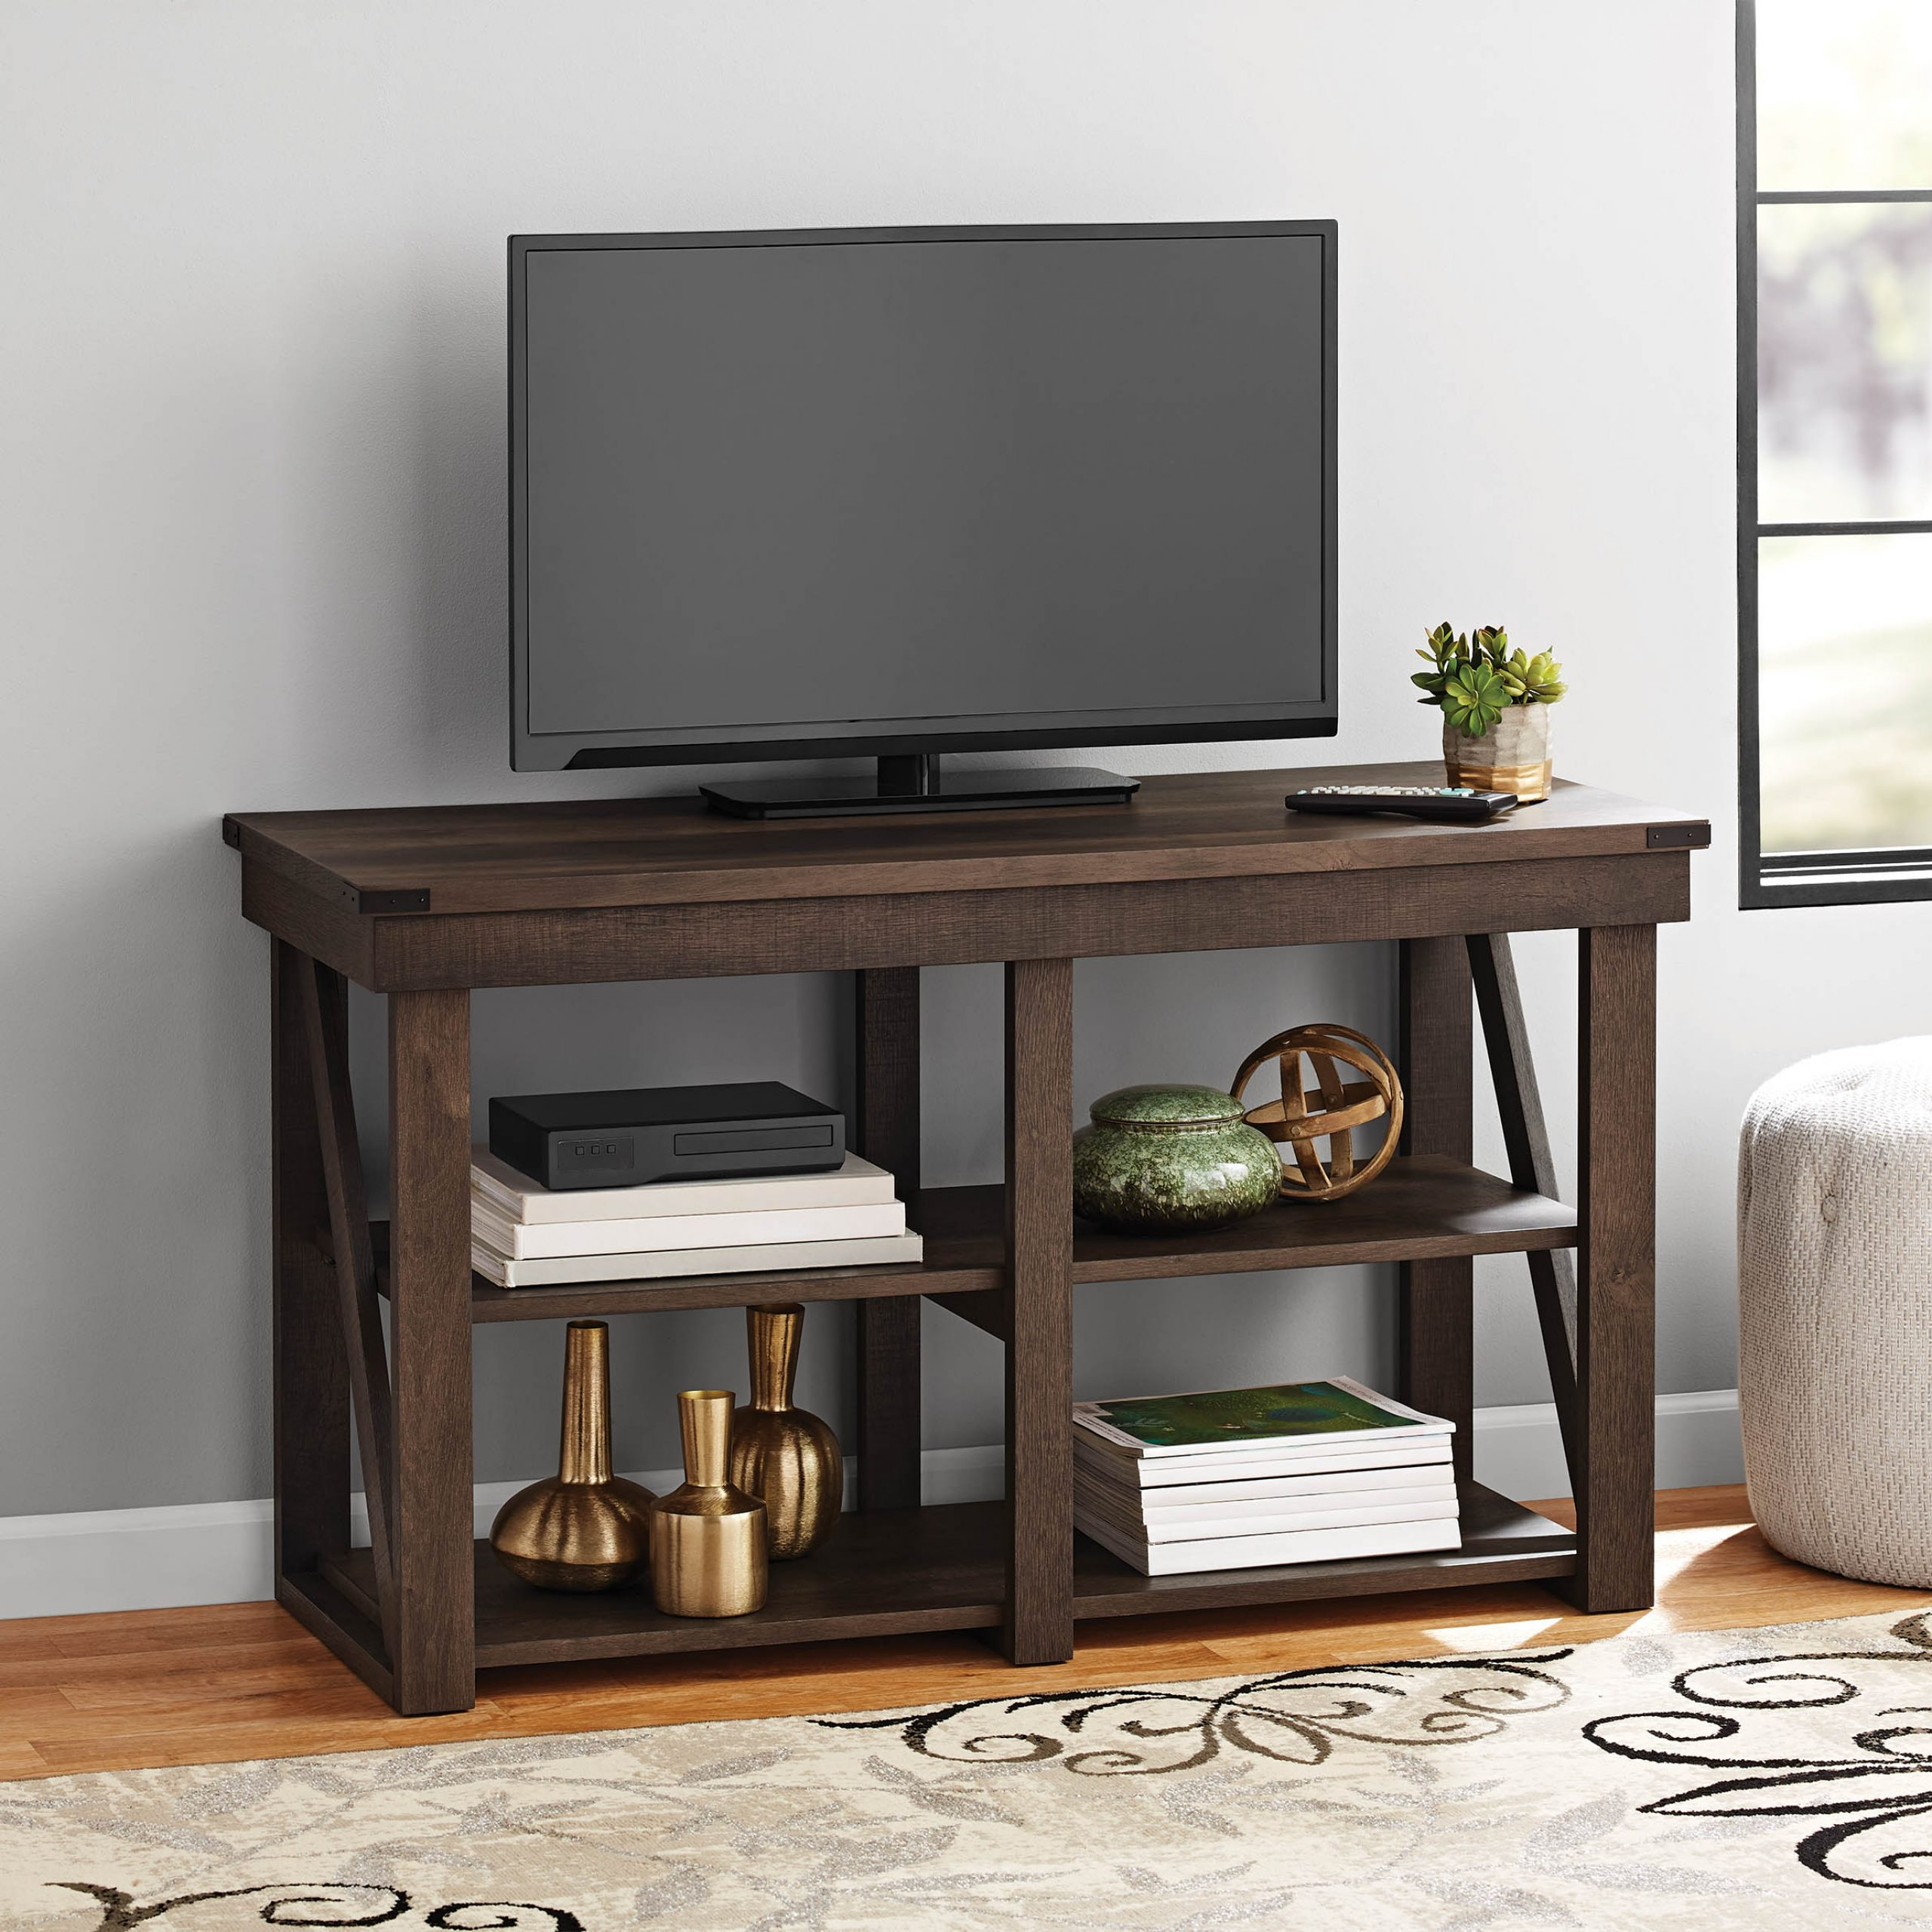 """Mainstays Lawson Tv Stand For Tvs Up To 55"""", Espresso Regarding Well Known Twila Tv Stands For Tvs Up To 55"""" (View 6 of 25)"""